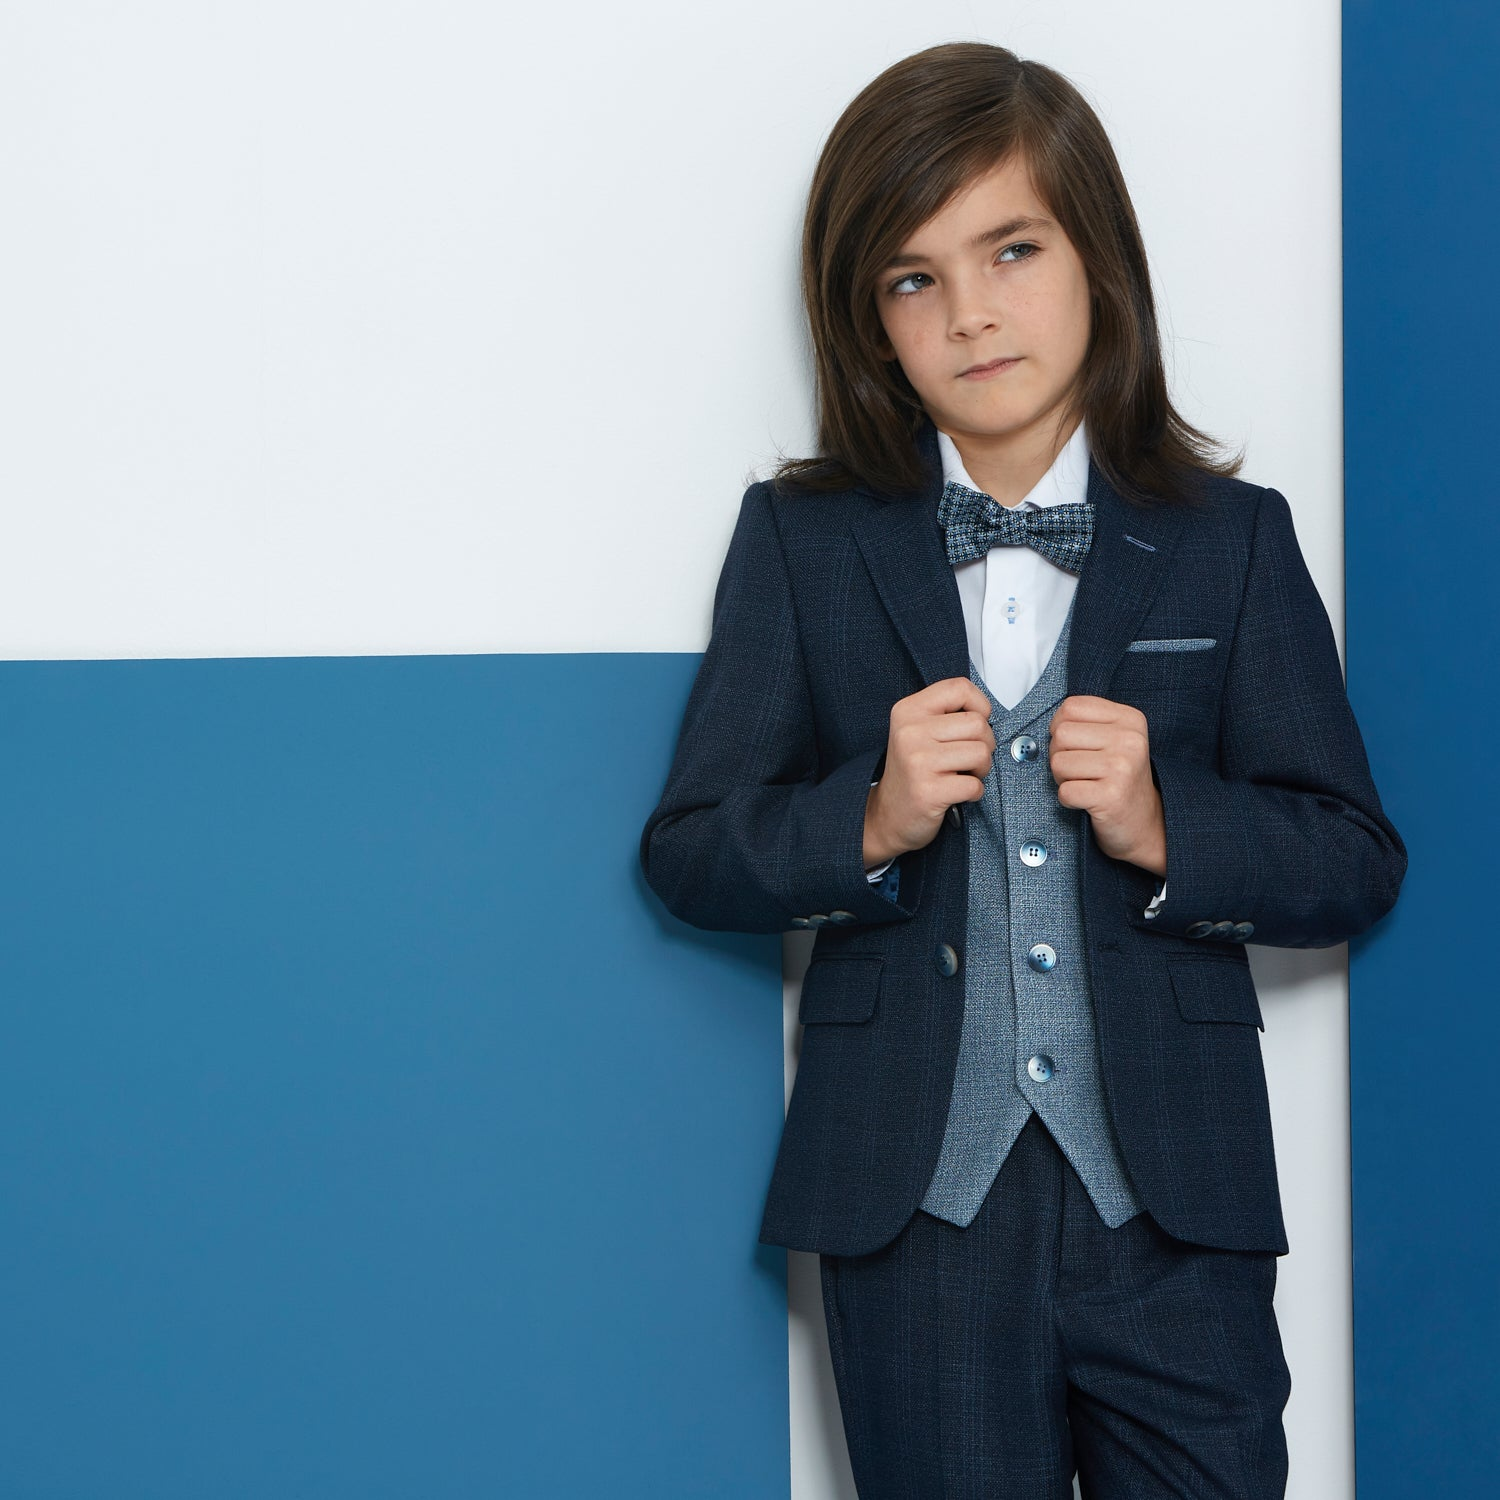 Joey Navy Blue Boys Suit